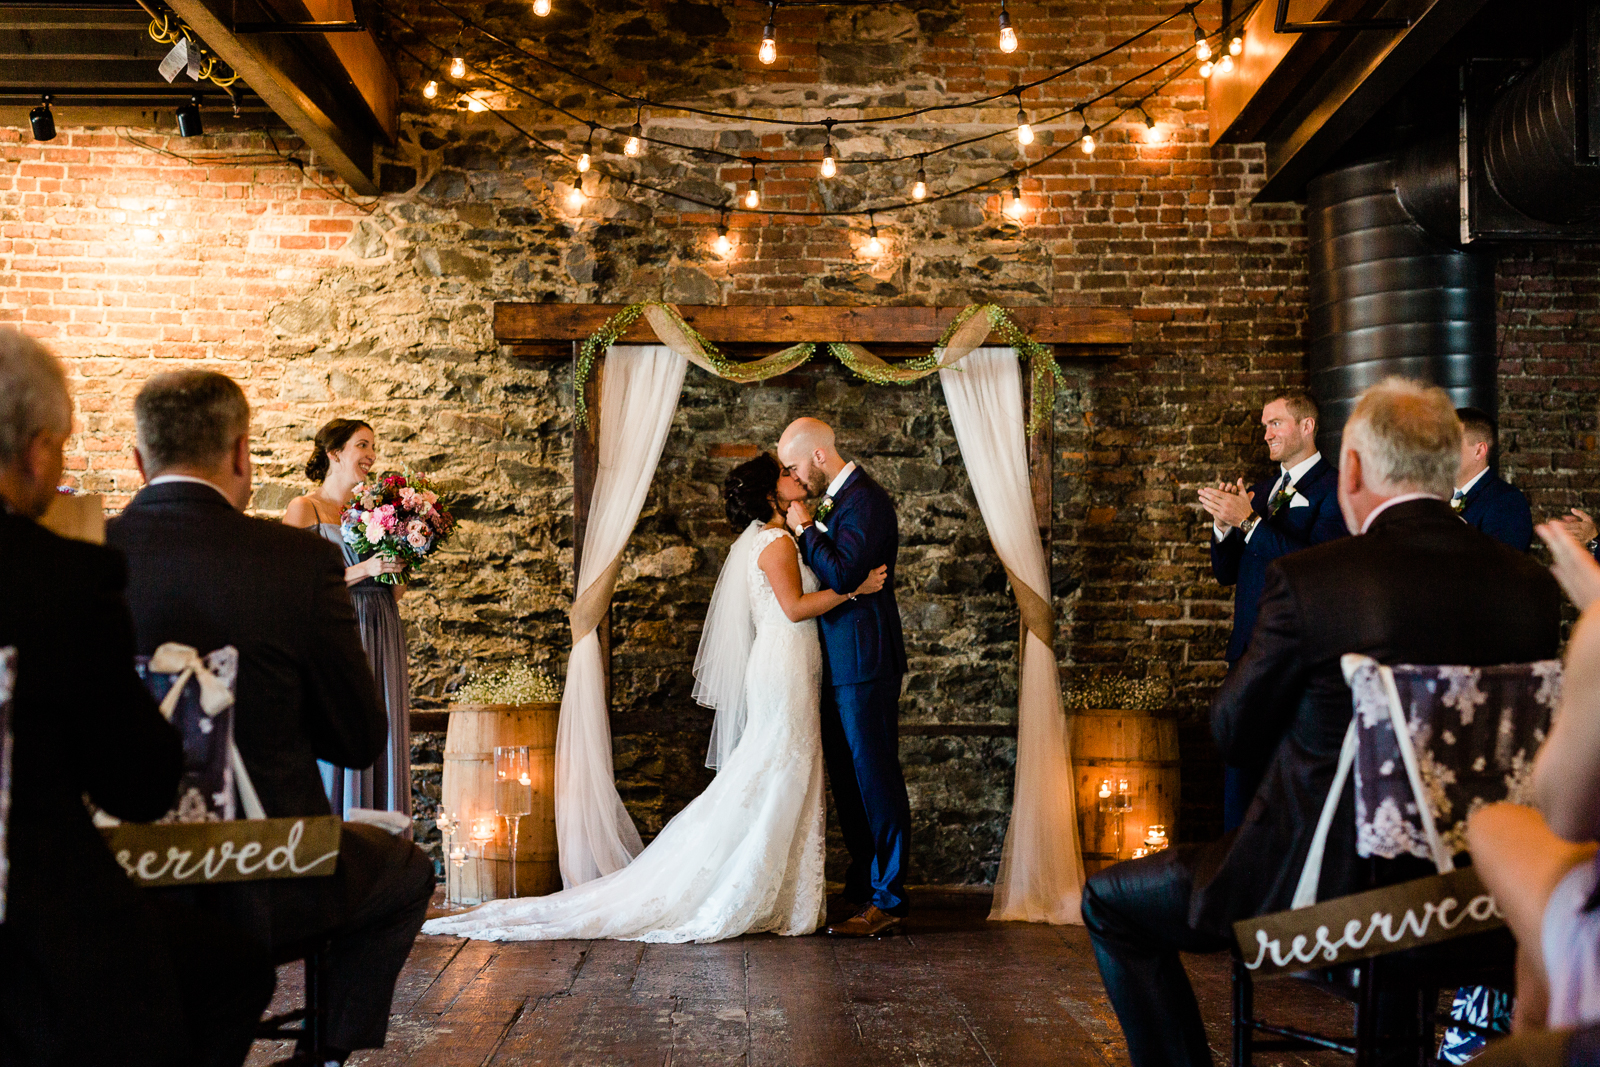 0042st-johns-wedding-photographer-caitlin-adam-yellowbelly.jpg